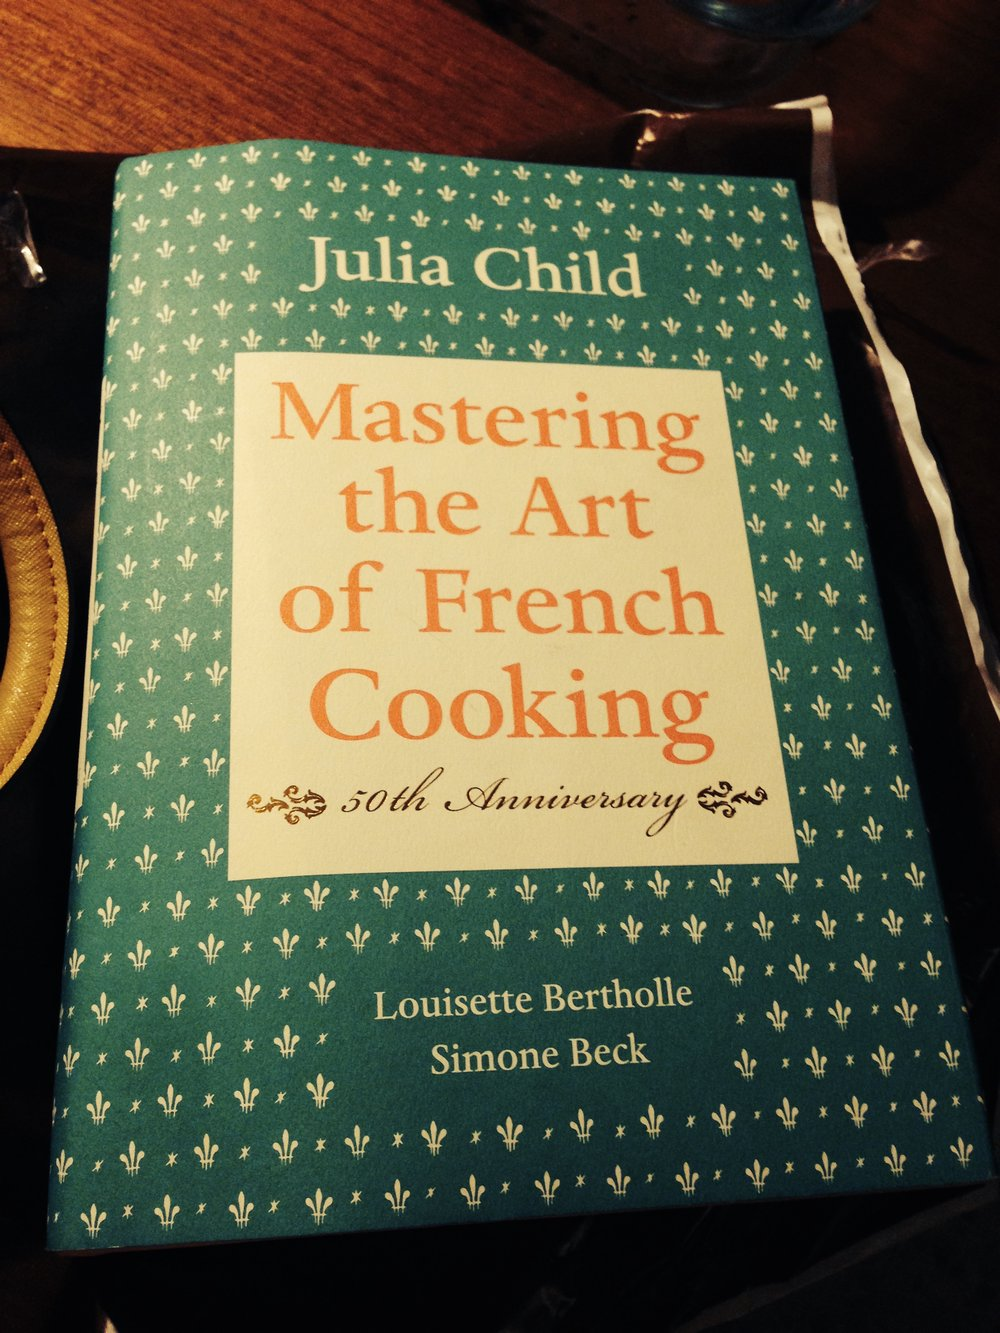 Mi querido libro de Mastering the Art of French Cooking. Me lo regaló una tía complice que se escapó con algunos ángeles.